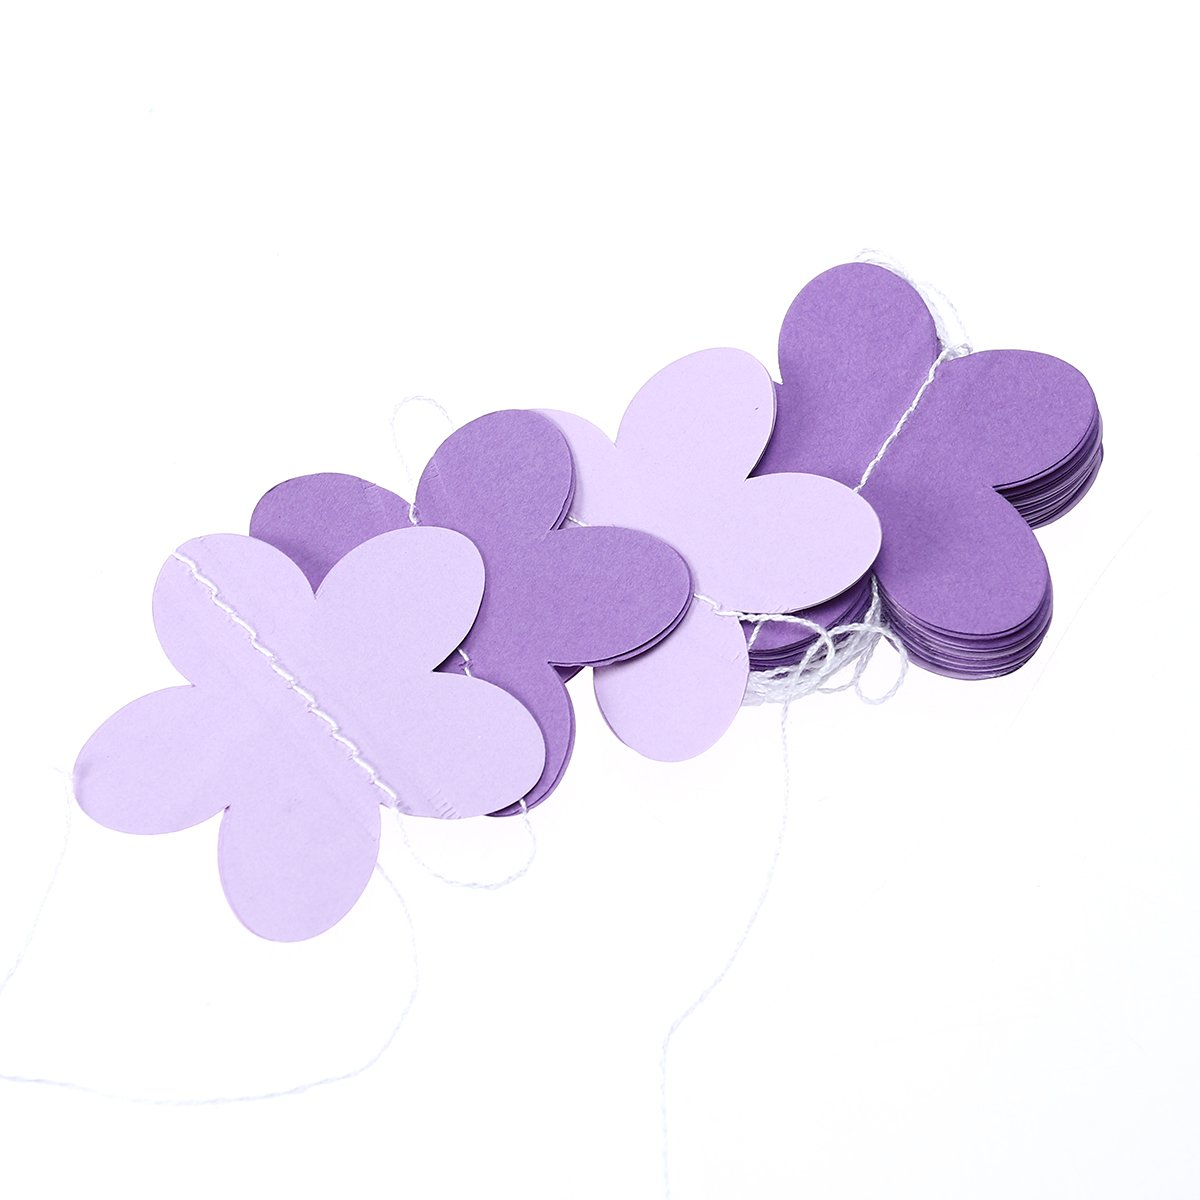 Tinksky Flower Shape Paper Garland for Wedding Bridal Showers Birthday Party Baby Shower Event Party Dark Purple+ Light Purple